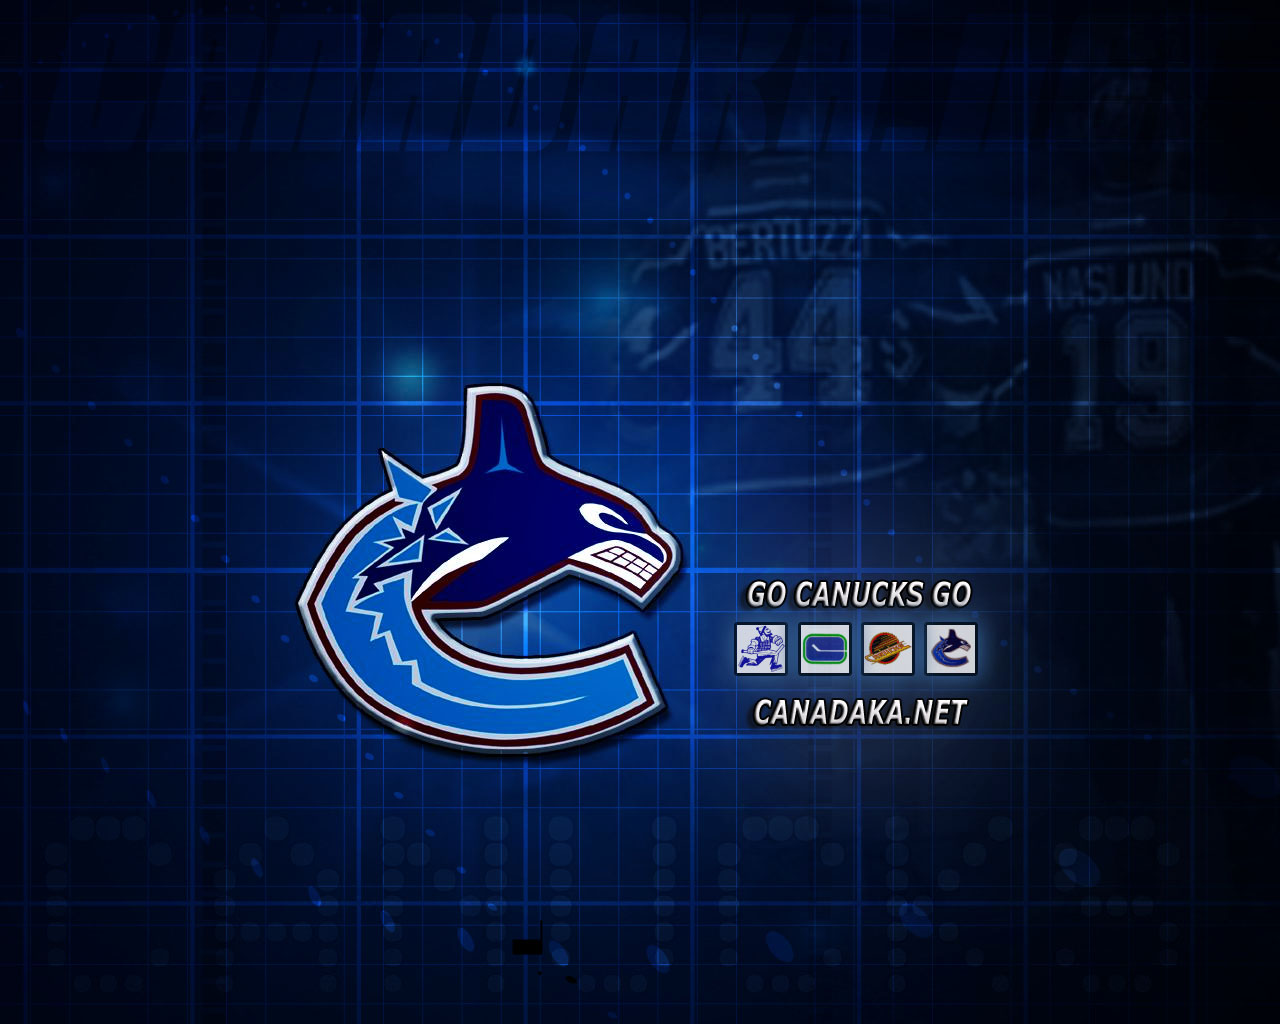 HDMOU TOP 8 VARIOUS CANUCKS WALLPAPERS IN HD 1280x1024